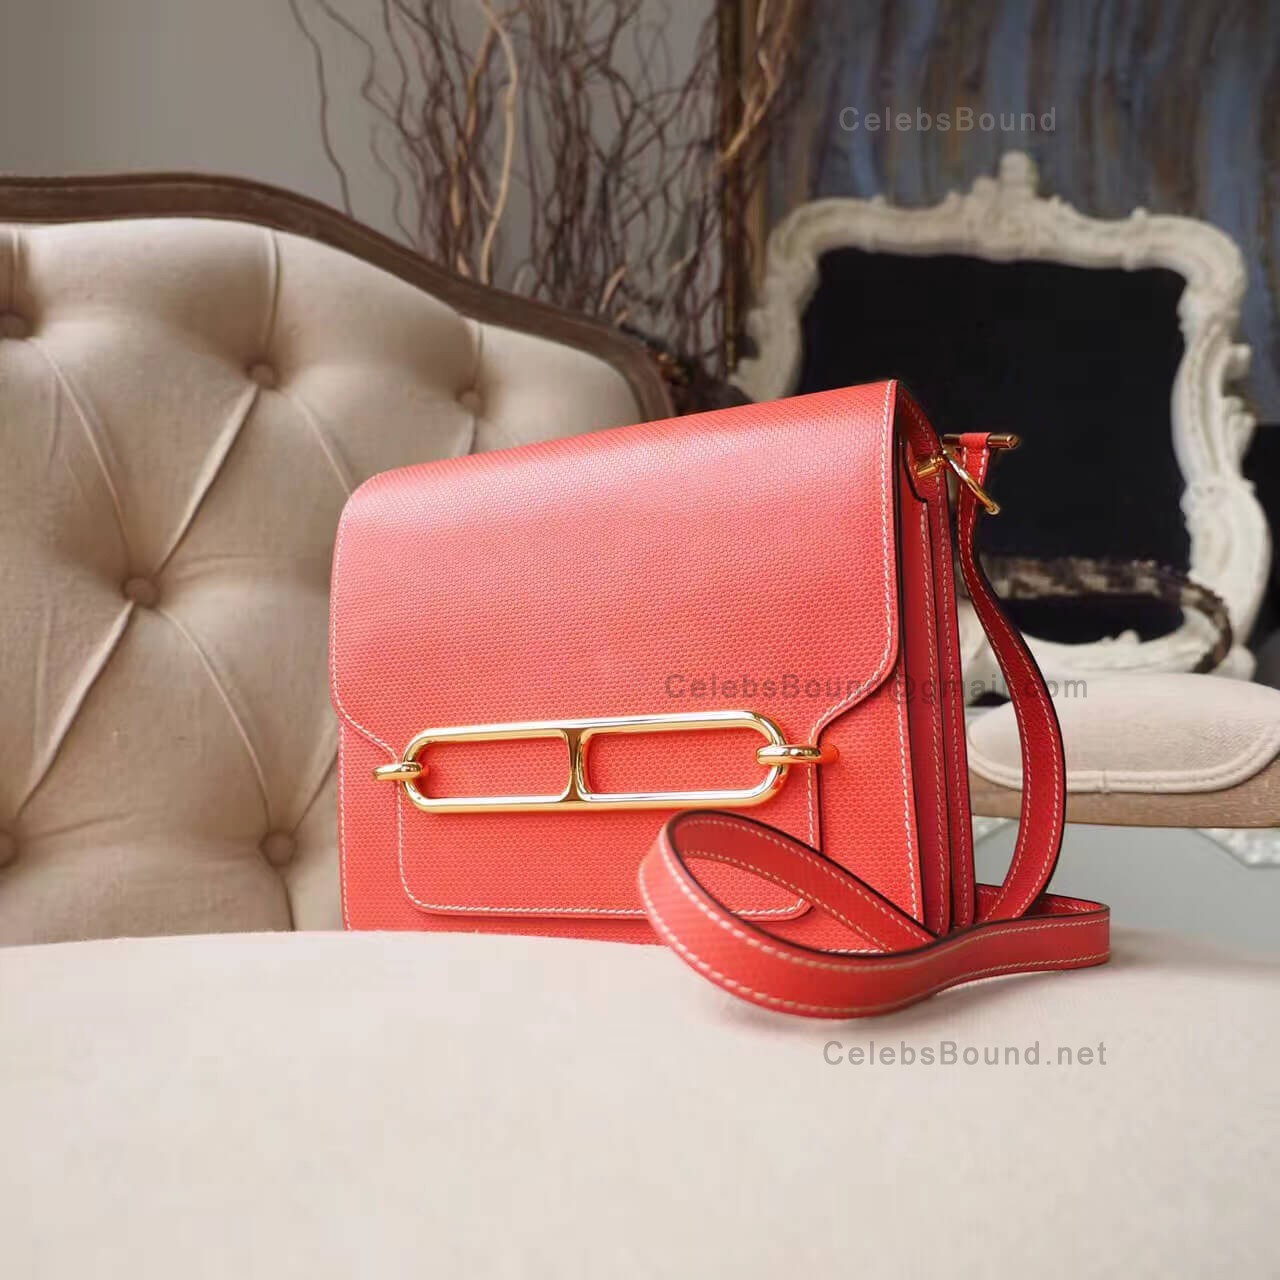 Replica Hermes Roulis 23 Bag in t5 Rose Jaipur Grain dH GHW